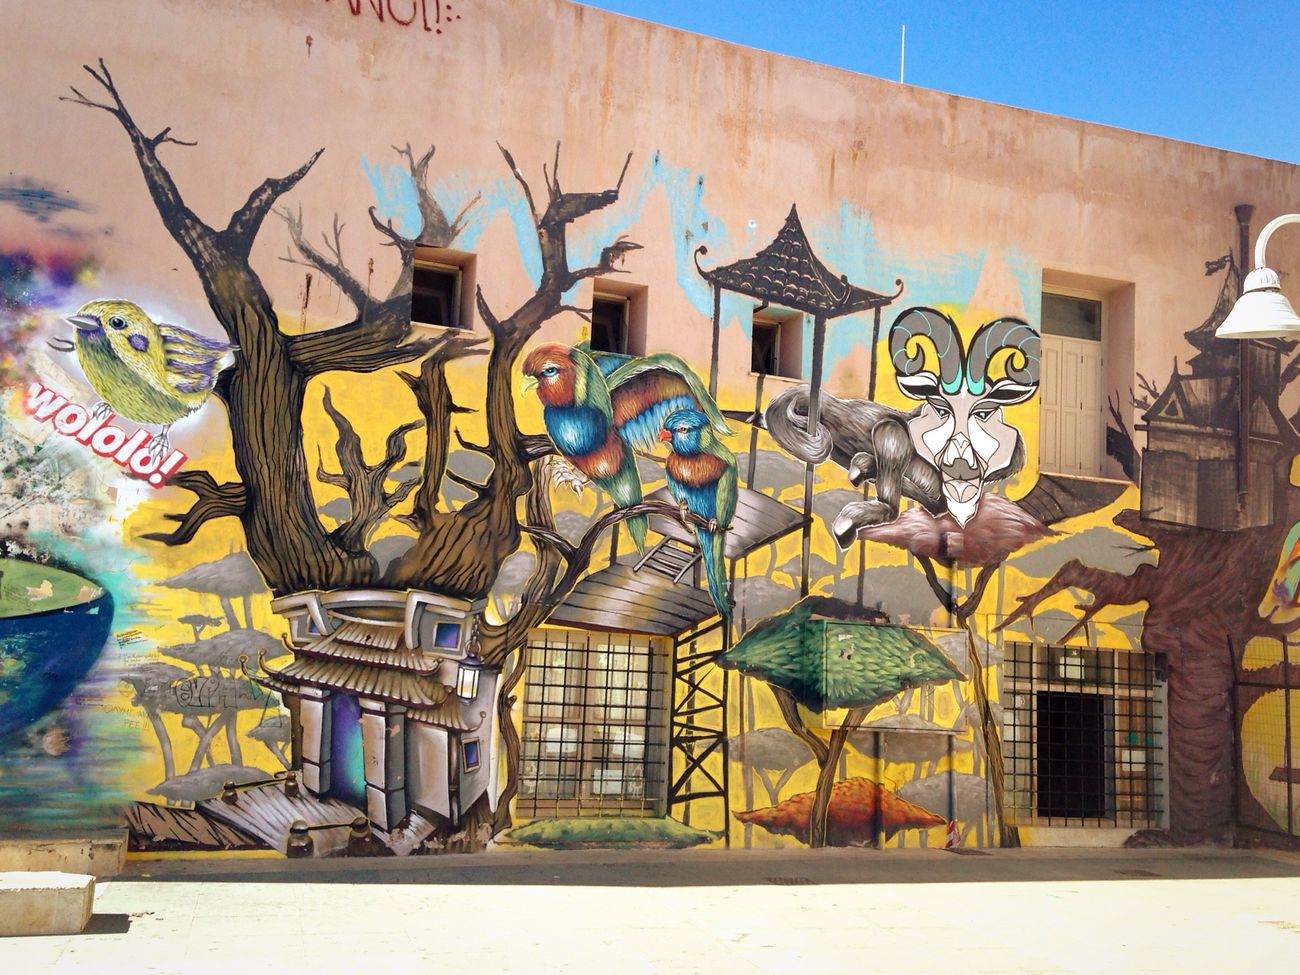 Crete School Artistic Expression Graffiti Sunlight Autumn Rethymno Building Exterior